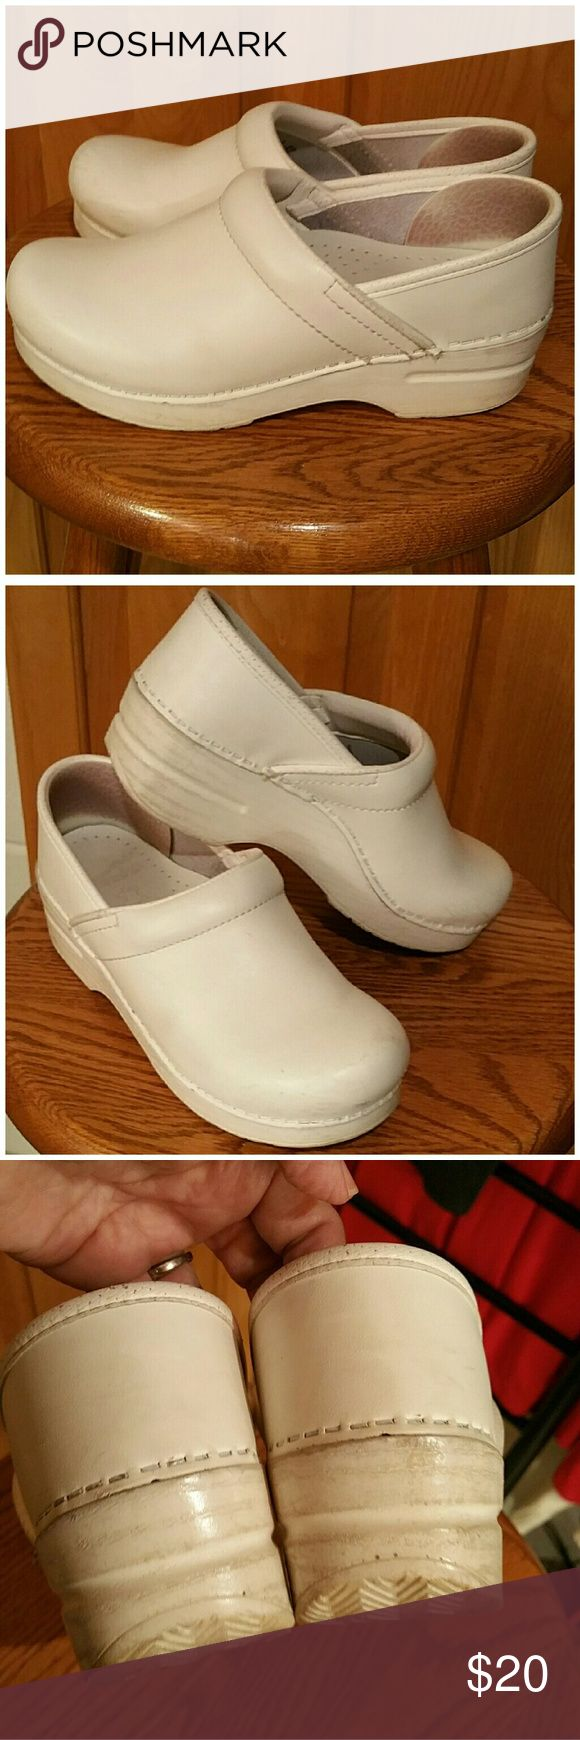 Dansko clogs Size 37 White Dansko clogs. Good condition, lots of life left. Great for a nursing student, assistant, dental office, doctors office. Size 37 which is equal to ladies size 7. Pricing to sell quickly. Dansko Shoes Mules & Clogs